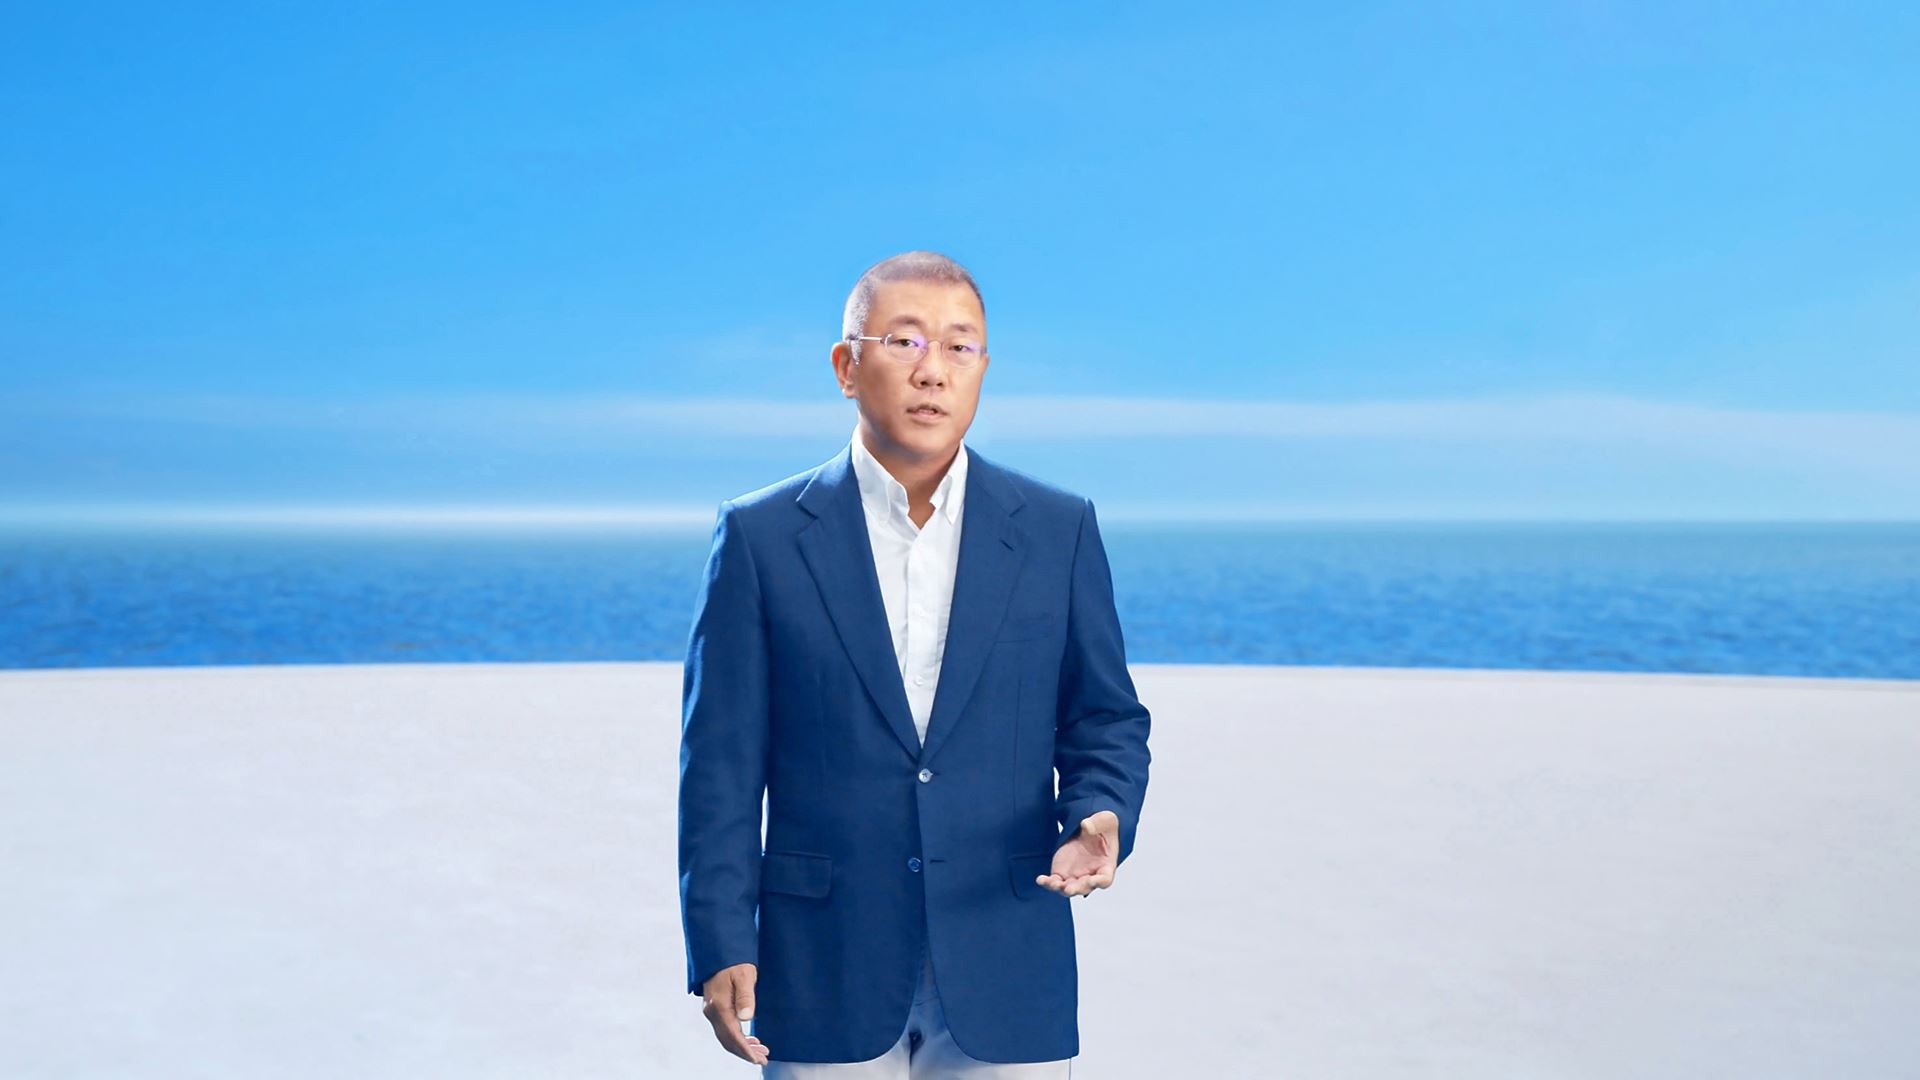 Hyundai Motor Group Presents Its Vision to Popularize Hydrogen by 2040 at Hydrogen Wave Forum - Image 5